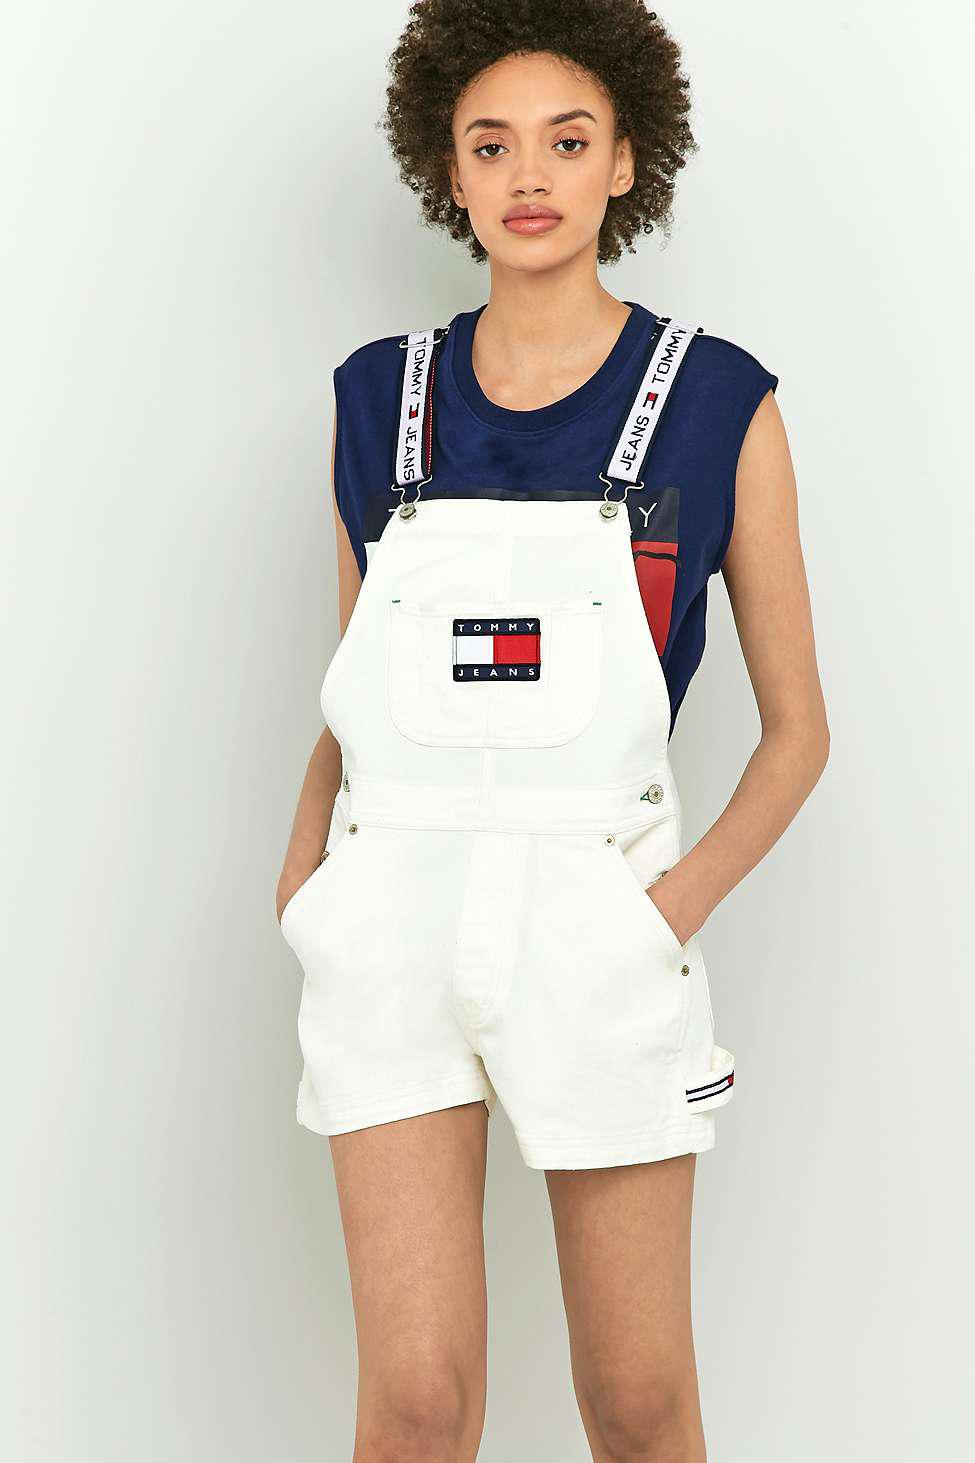 e979b7fb6 Tommy Hilfiger '90s White Shorts Dungarees - Womens L in White - Lyst